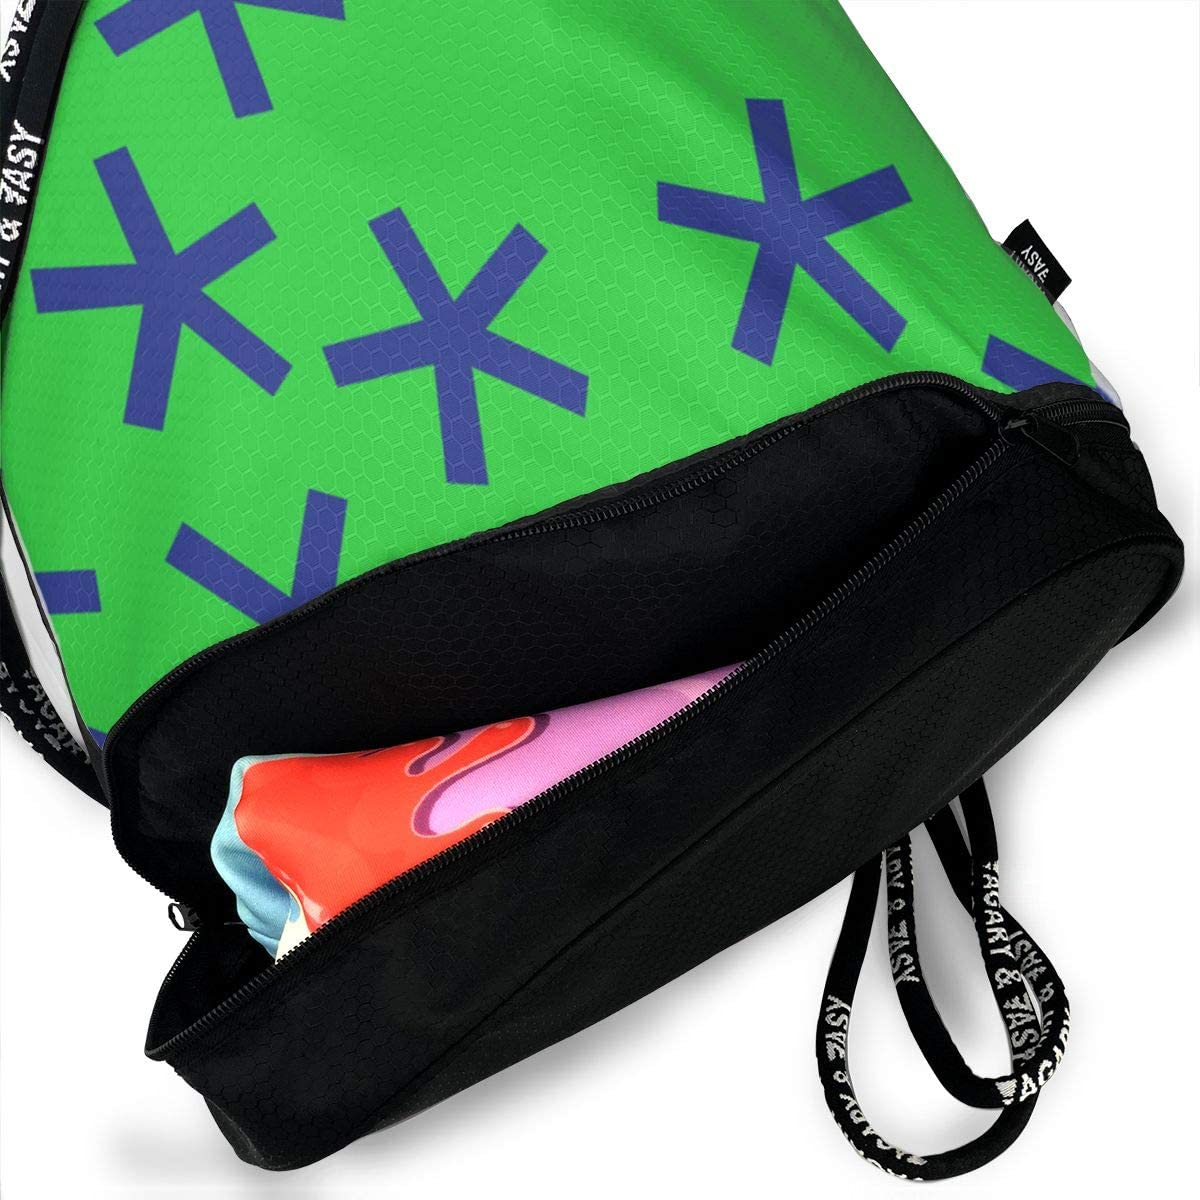 Jumbo Stars 42 Drawstring Backpack Sports Athletic Gym Cinch Sack String Storage Bags for Hiking Travel Beach